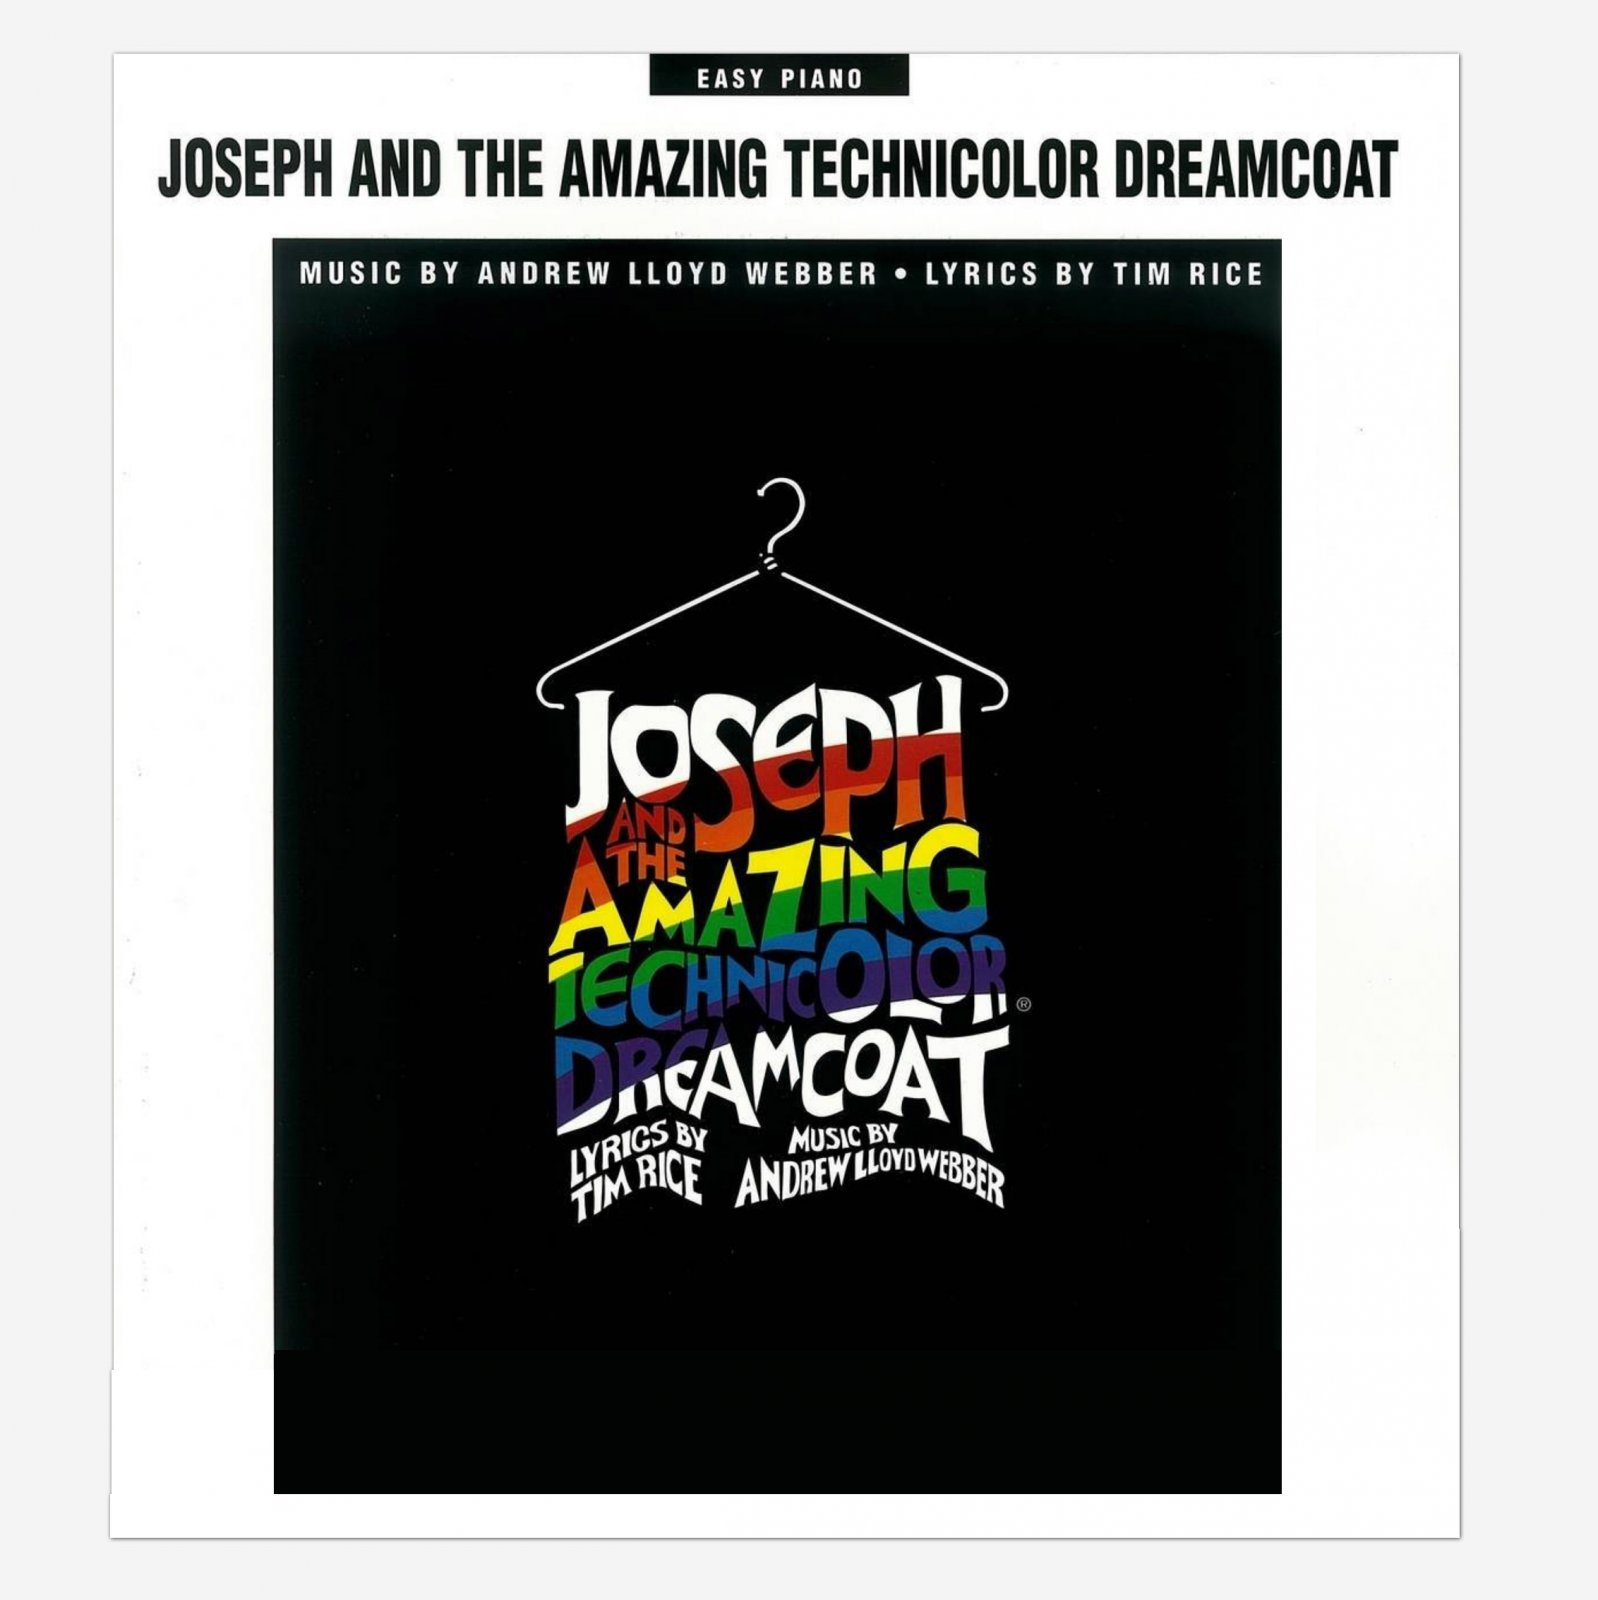 Joseph and the Amazing Technicolor Dreamcoat (Easy Piano)